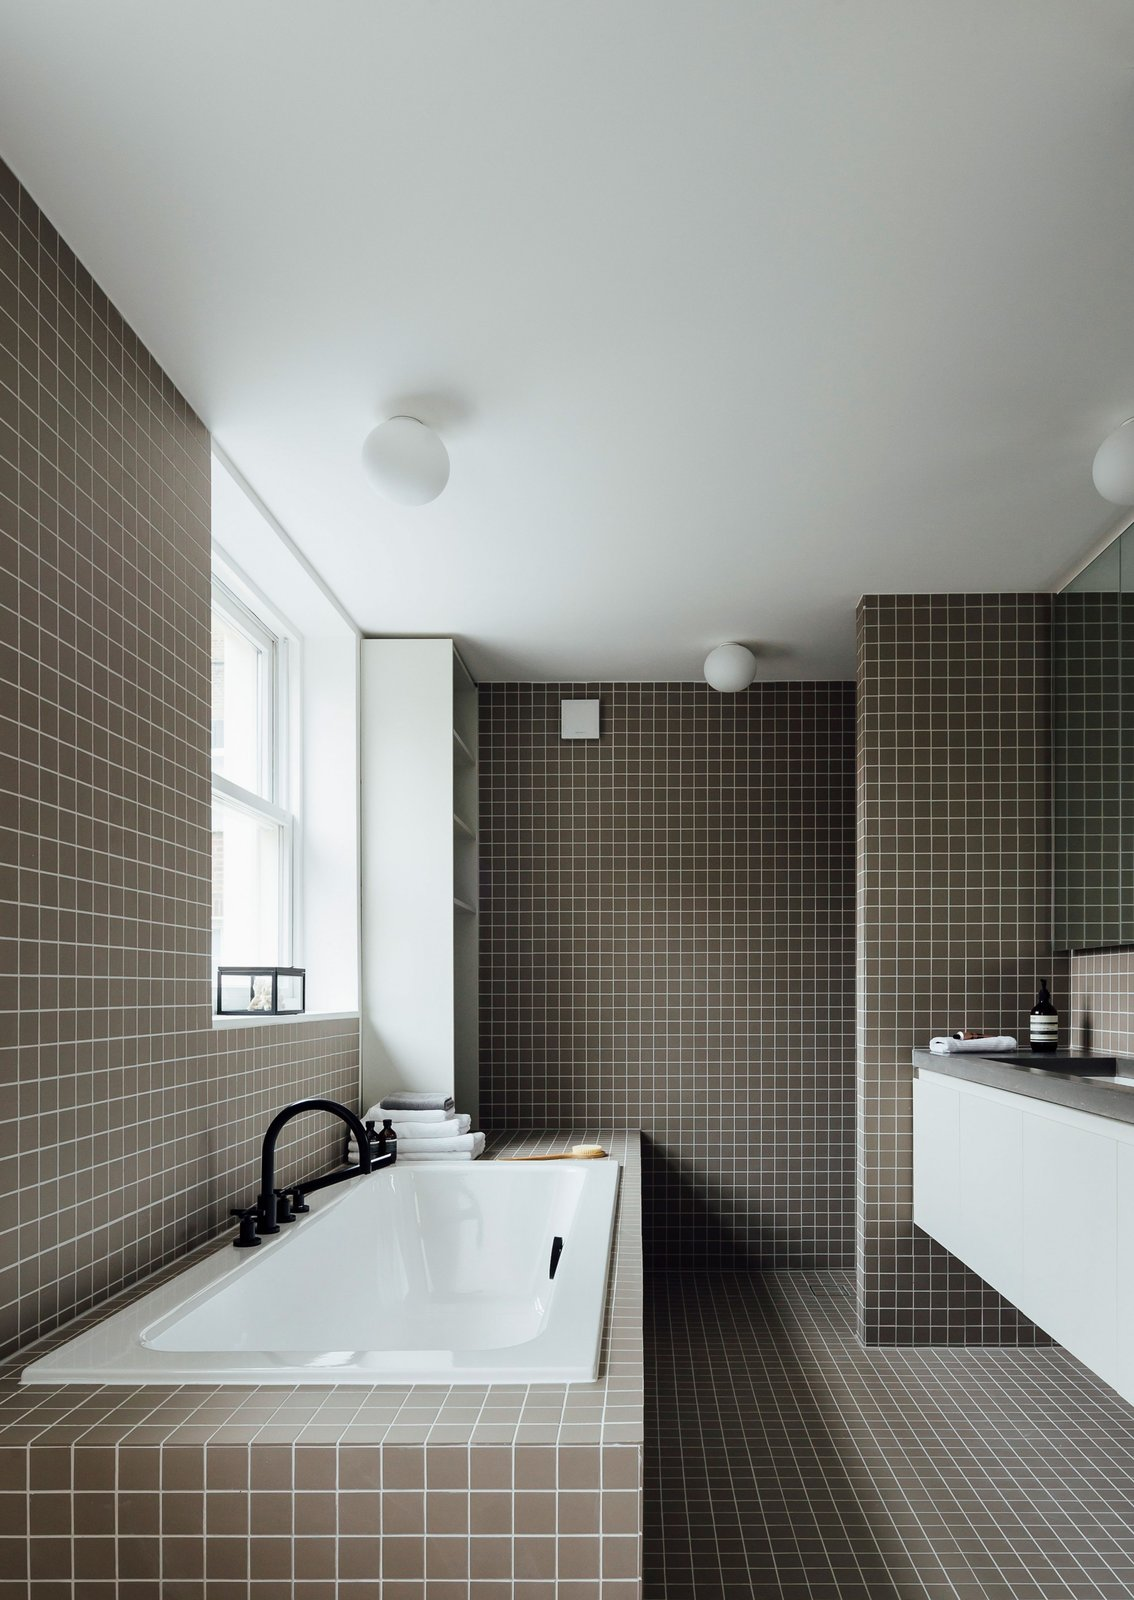 Tagged: Bath Room, Drop In Tub, and Tile Counter.  Stanhope Gardens by Leibal